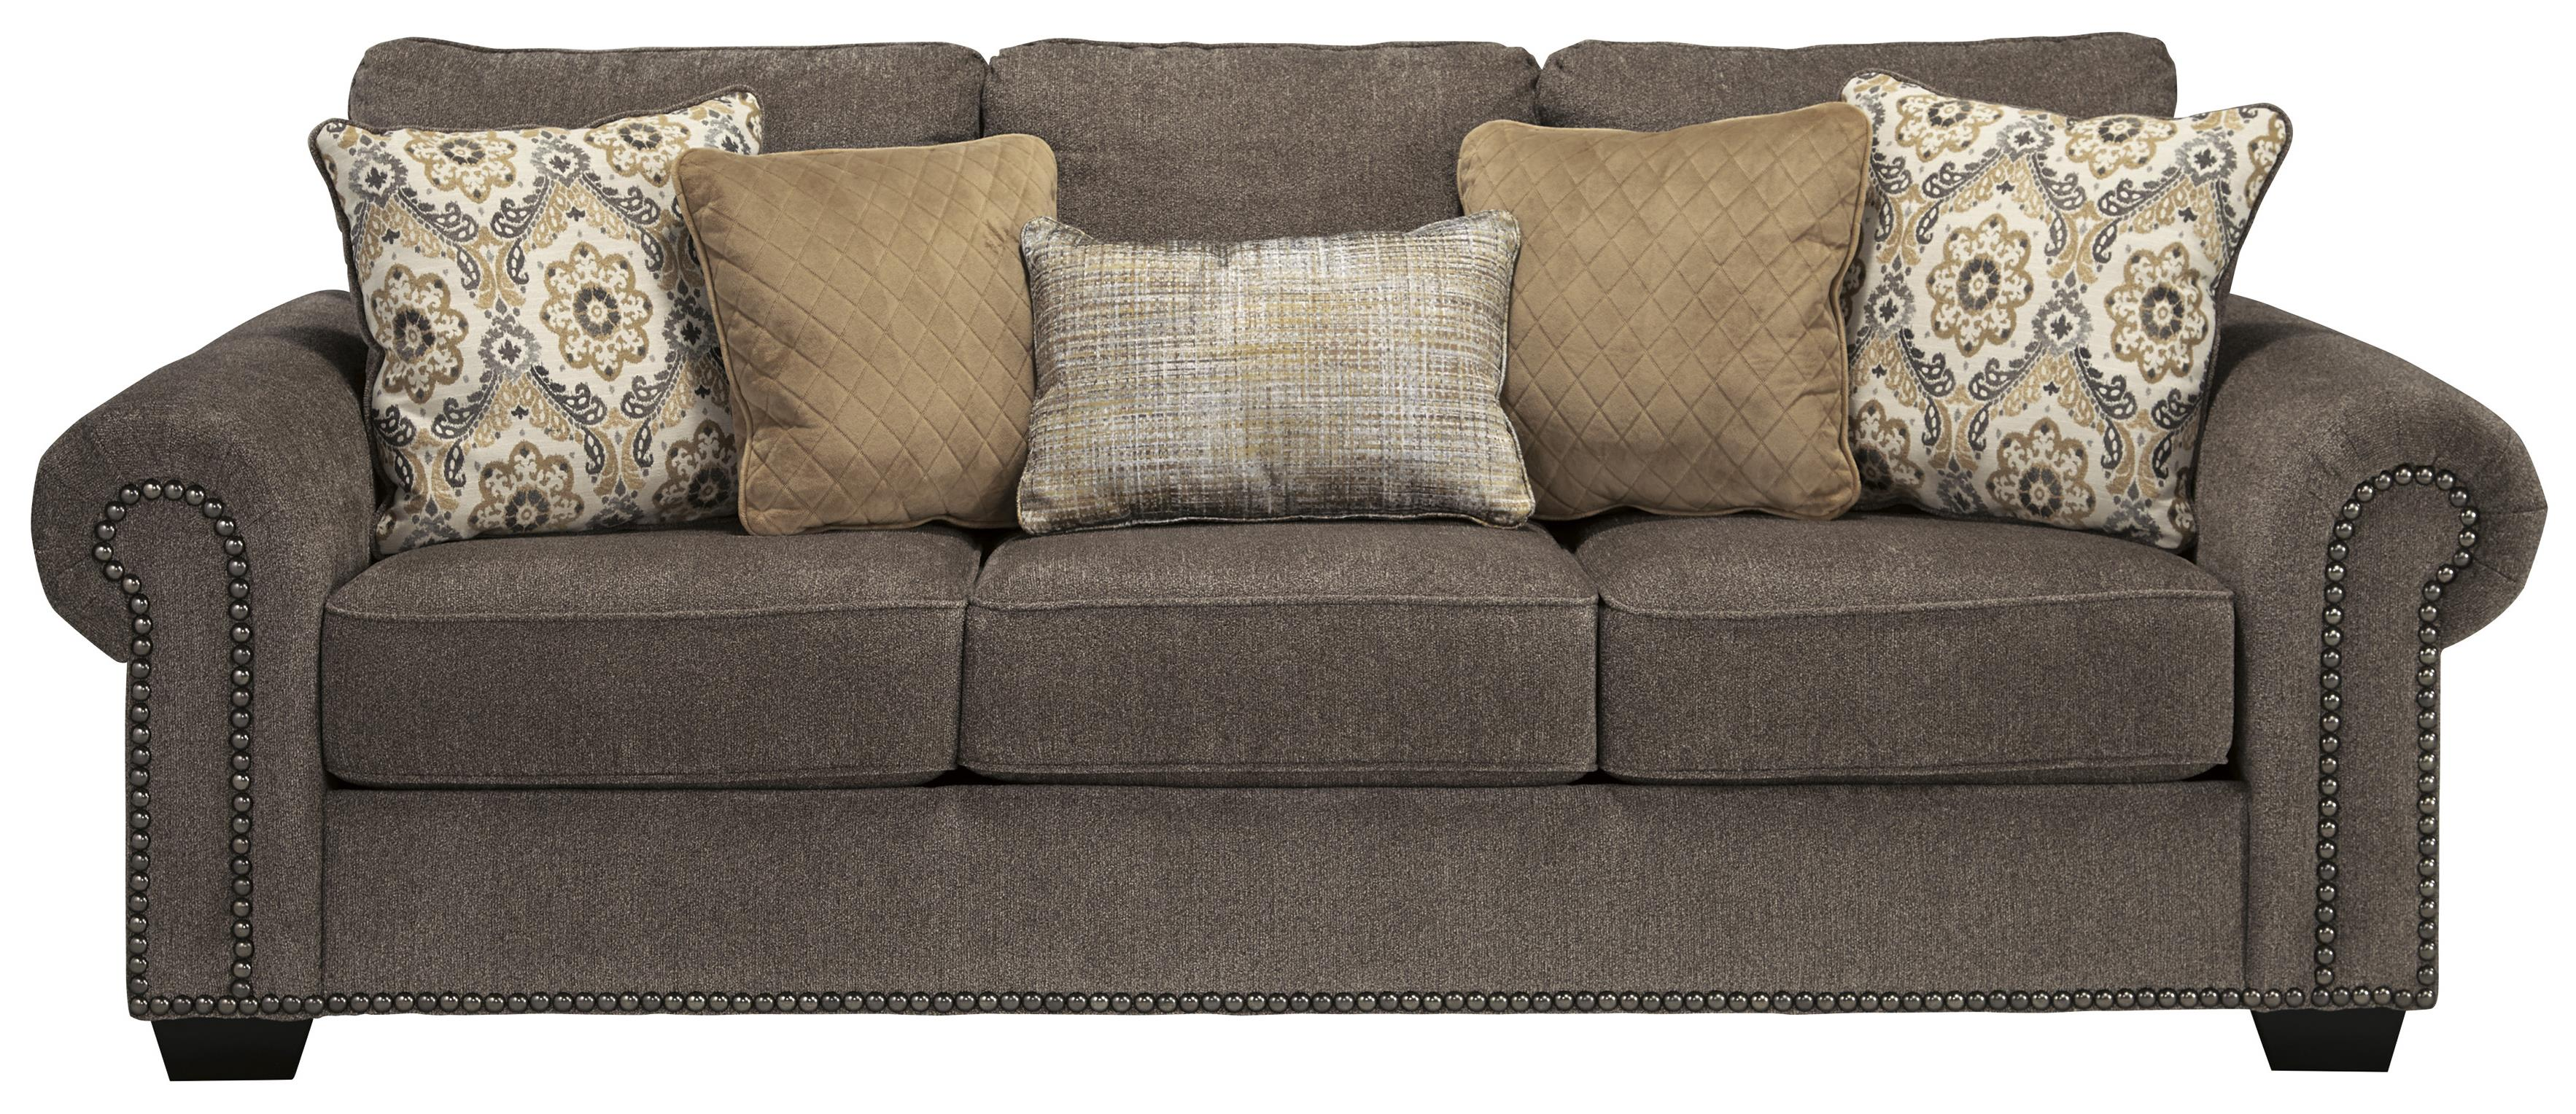 Transitional Queen Sofa Sleeper With Nailhead Trim Amp Coil